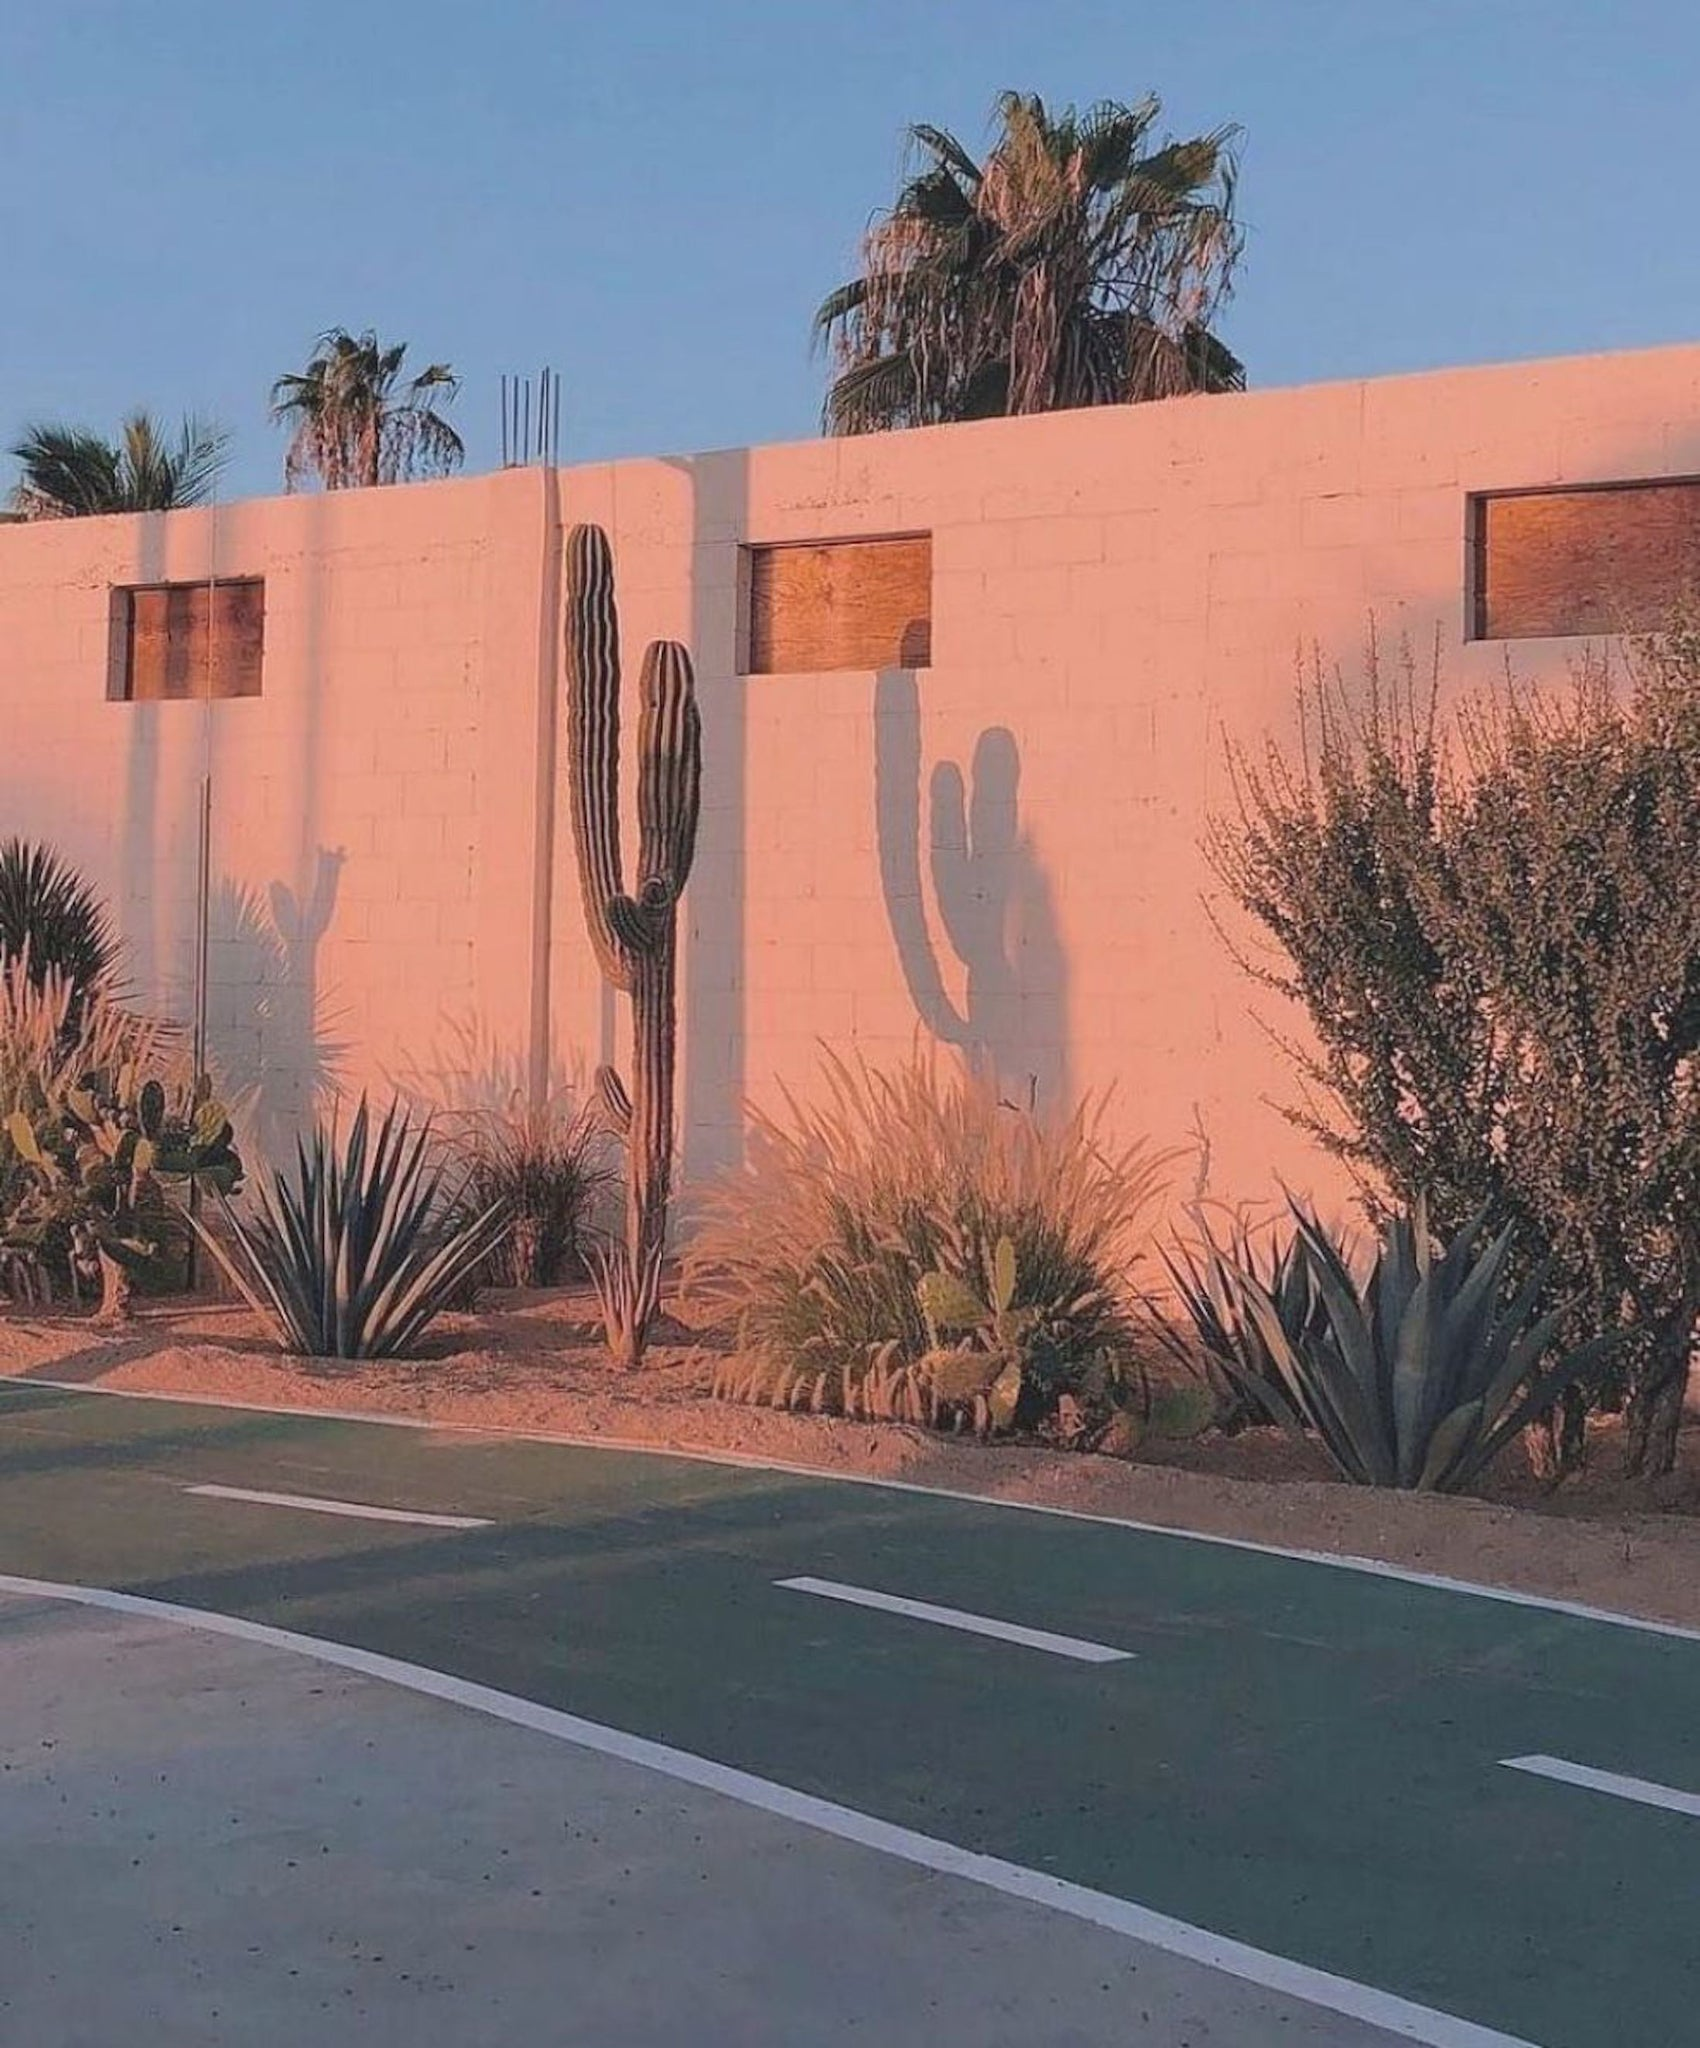 CACTI IN THE GLOWING SUNSET | DYKE & DEAN